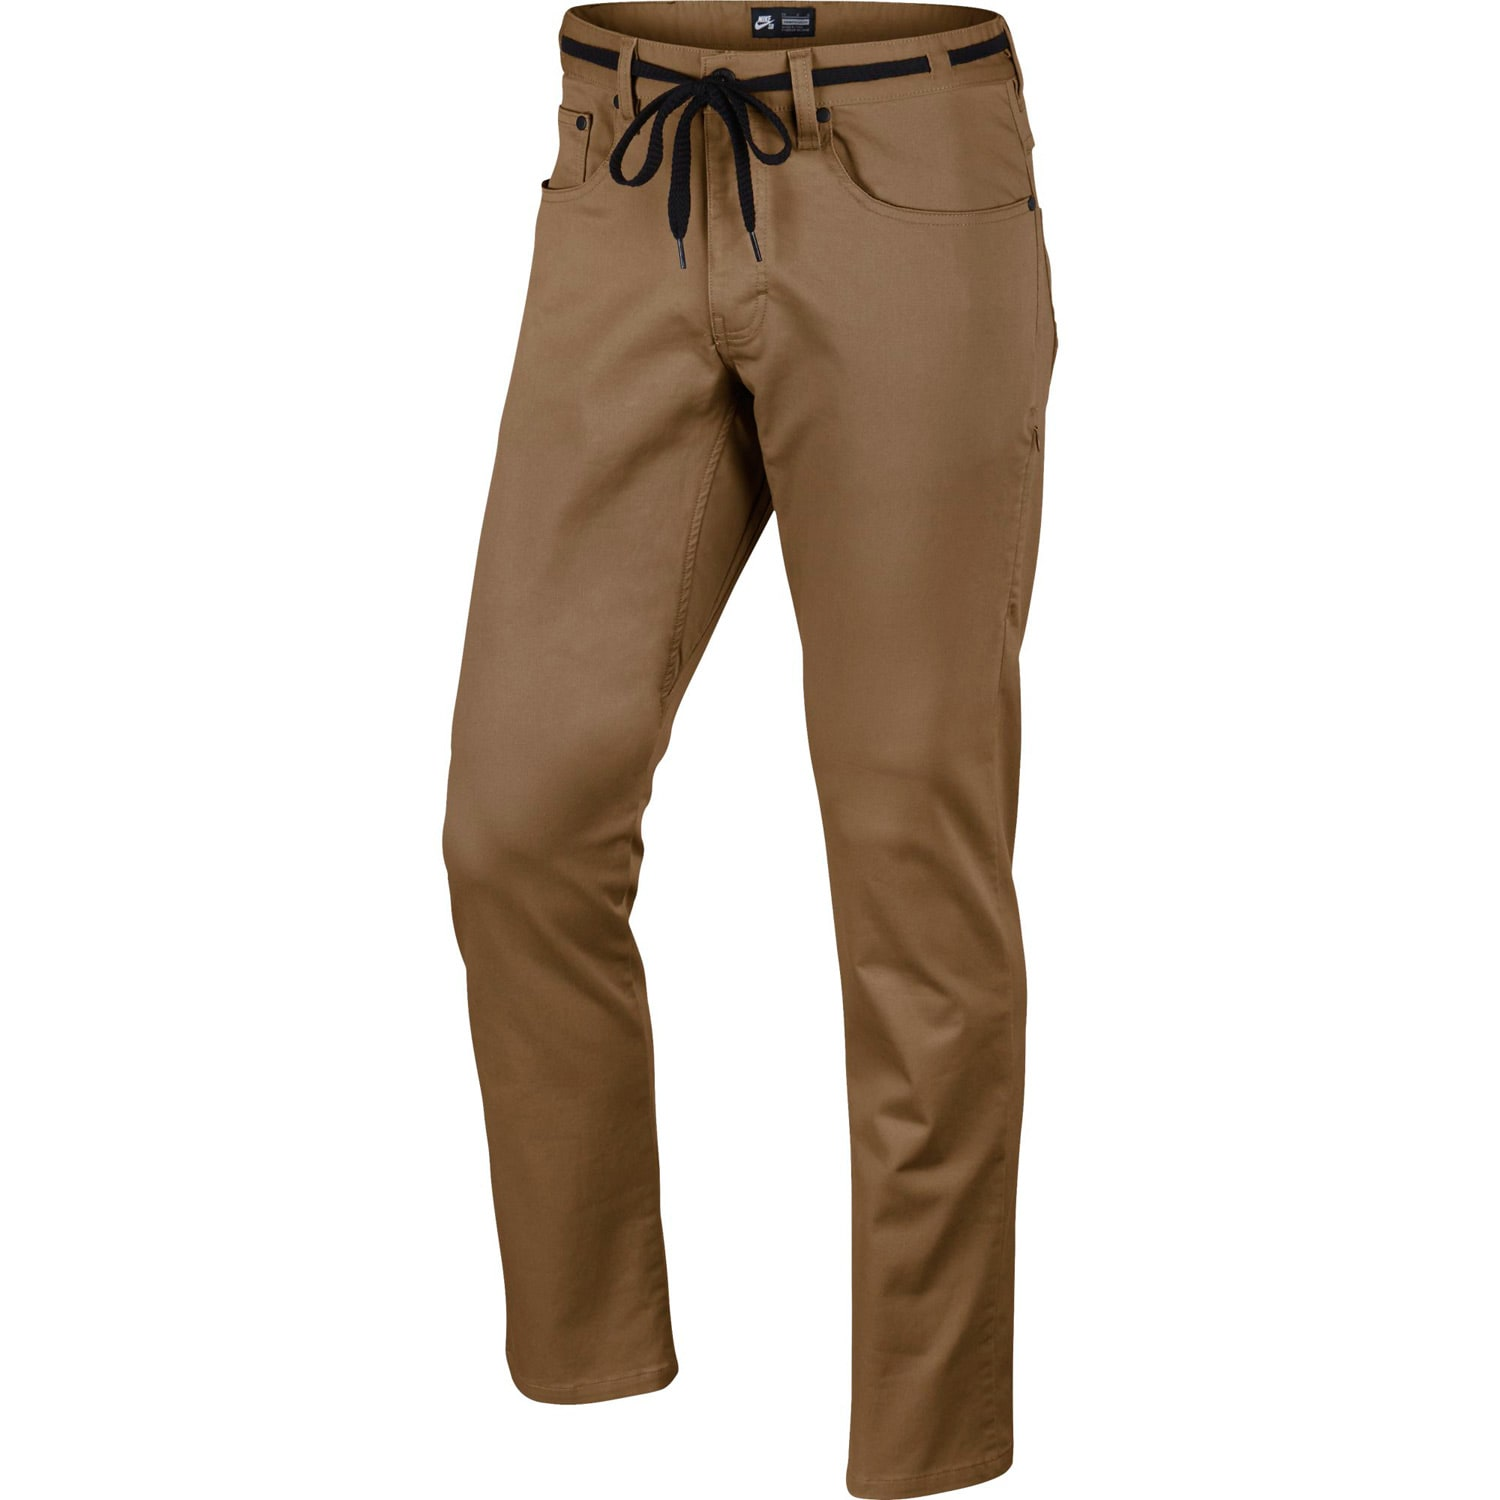 Classic 5-pocket pant with luxury details like personalized buttons and Amaretta™ touches. Giving you a classic vintage look, while keeping you stylish in the office and around town.5/5(1).